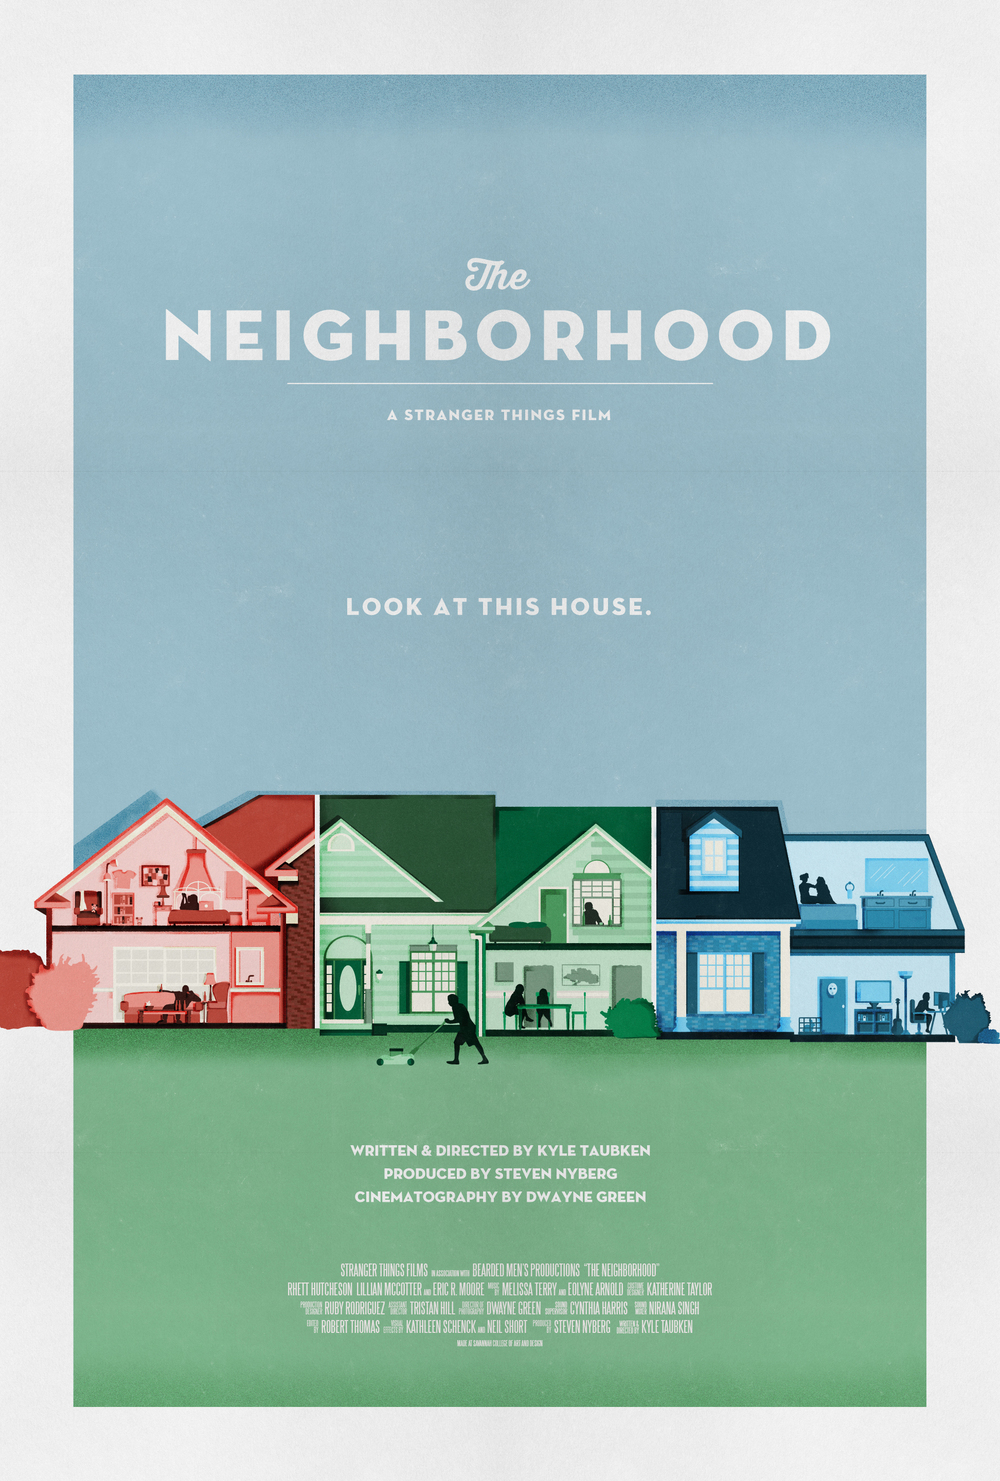 Official poster for the 2014 short film THE NEIGHBORHOOD - Written & Directed by Kyle Taubken, Produced by Steven Nyberg, Cinematography by Dwayne Green